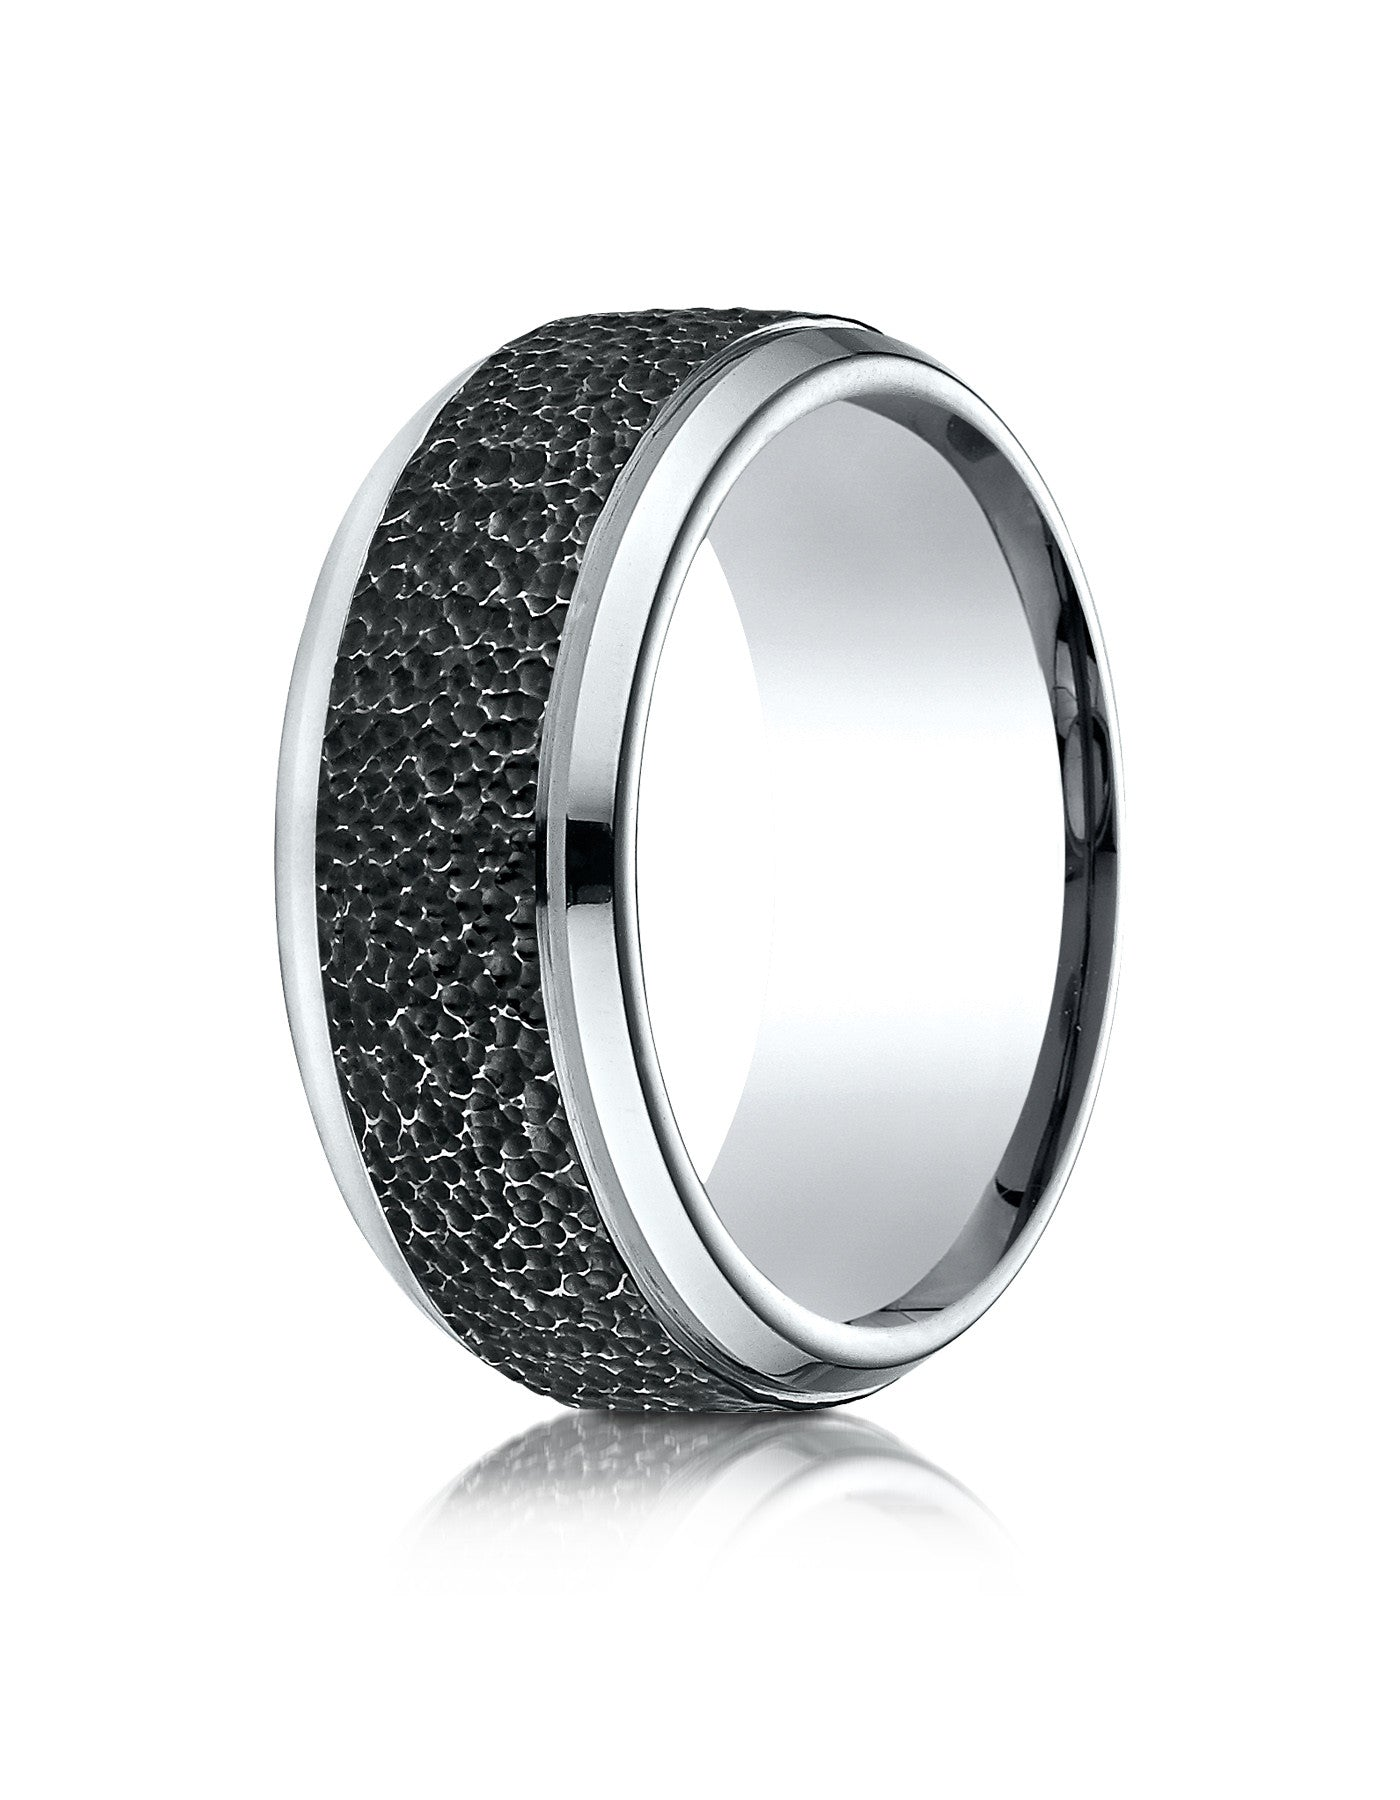 wedding bands product ceramic inlay camo snow black camouflage rings titanium mens ring band white